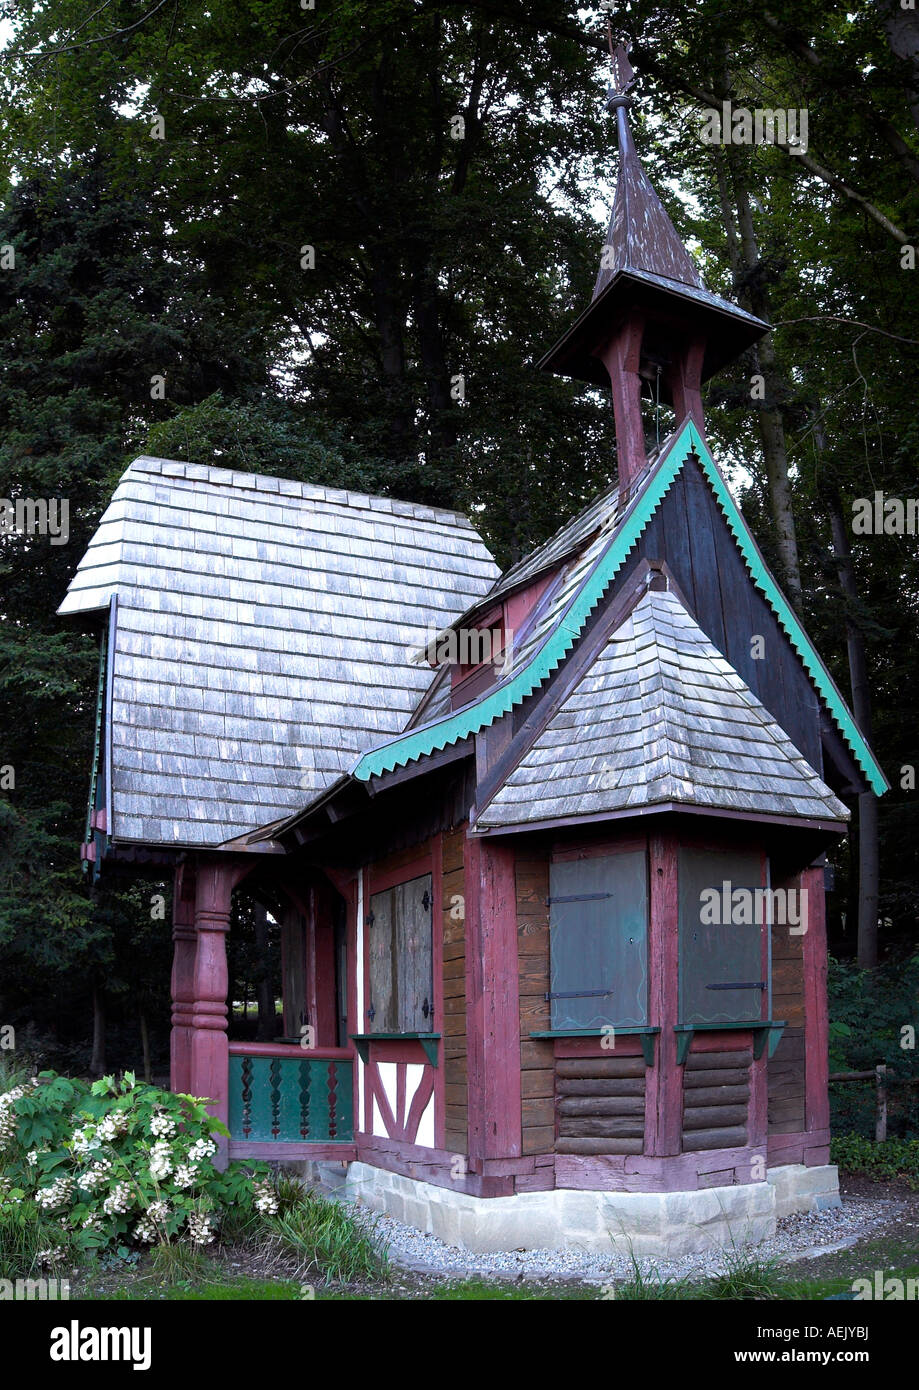 Witch house in the city garden of Ueberlingen at the Bodenseee, district Ueberlingen, Baden-Wuerttemberg, Germany - Stock Image